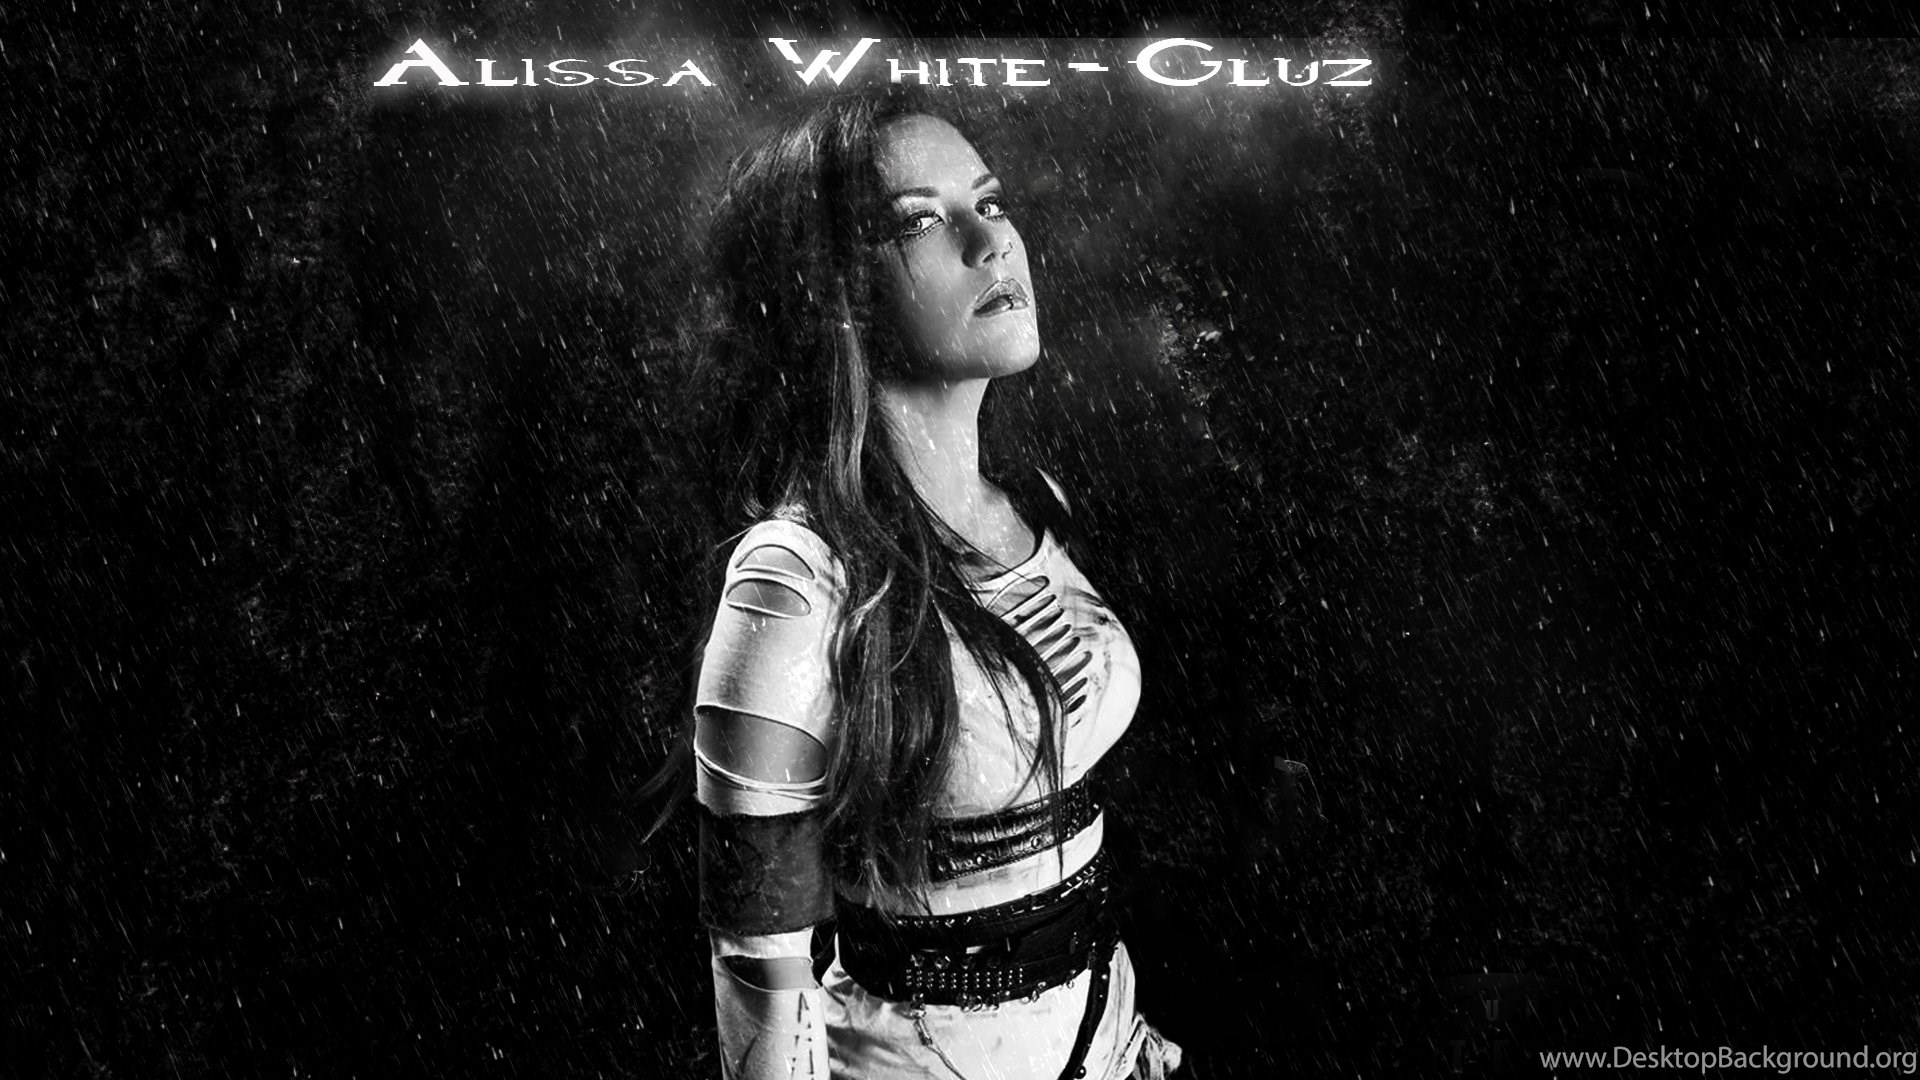 Alissa White Gluz By Ethereal90 On Deviantart Desktop Background